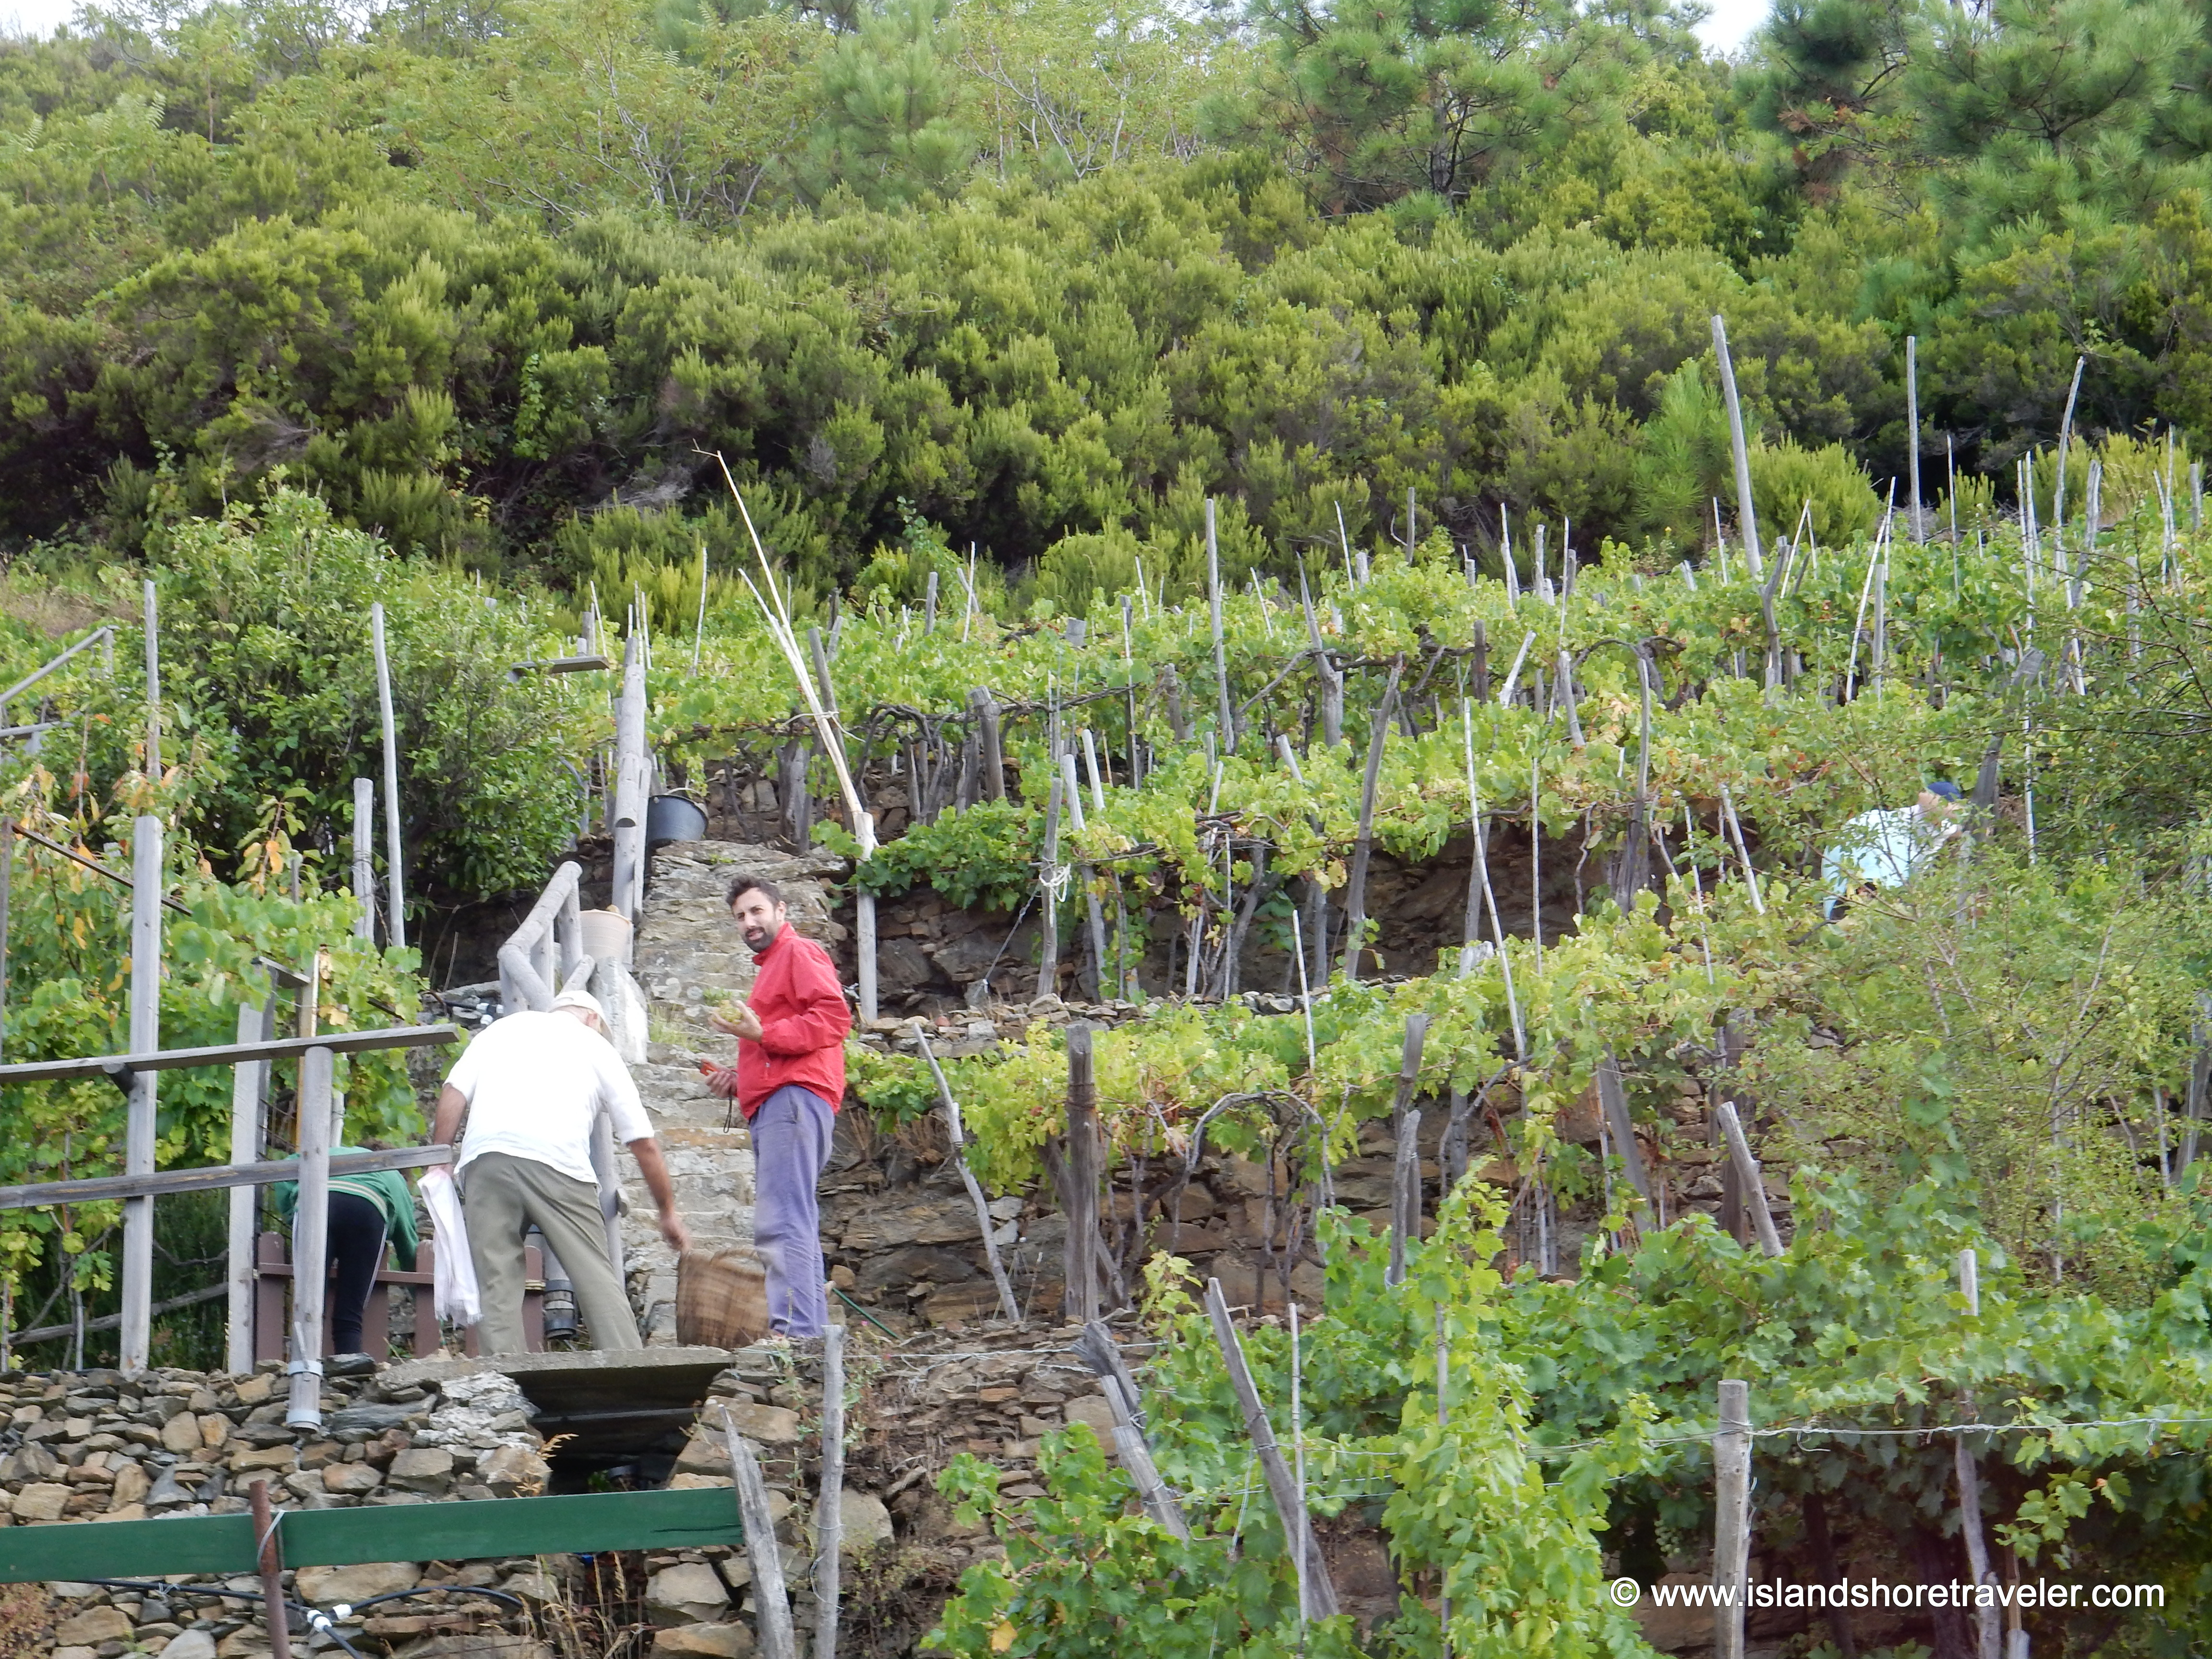 Grape Harvesting Near Manarola, Italy